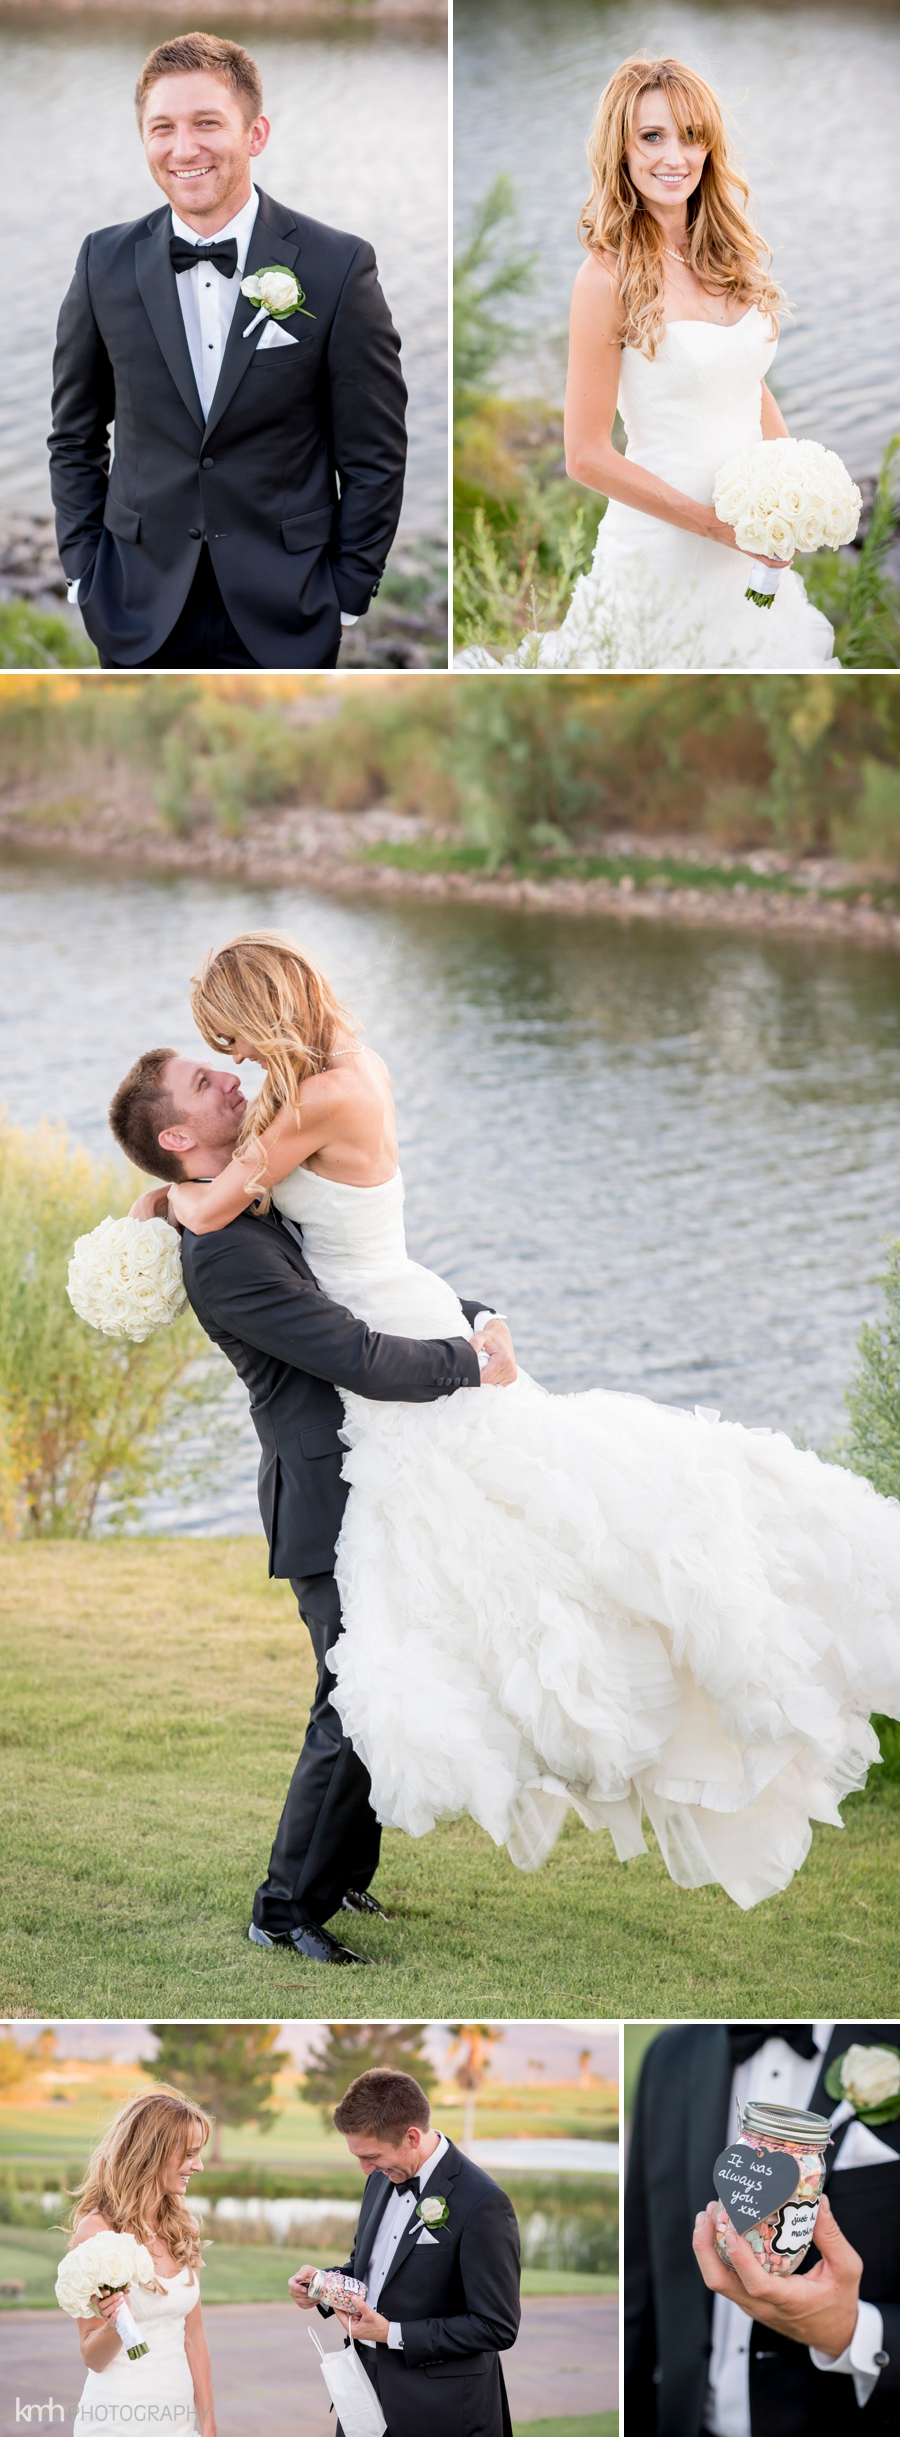 as vegas boulder city boulder creek golf club wedding photographer